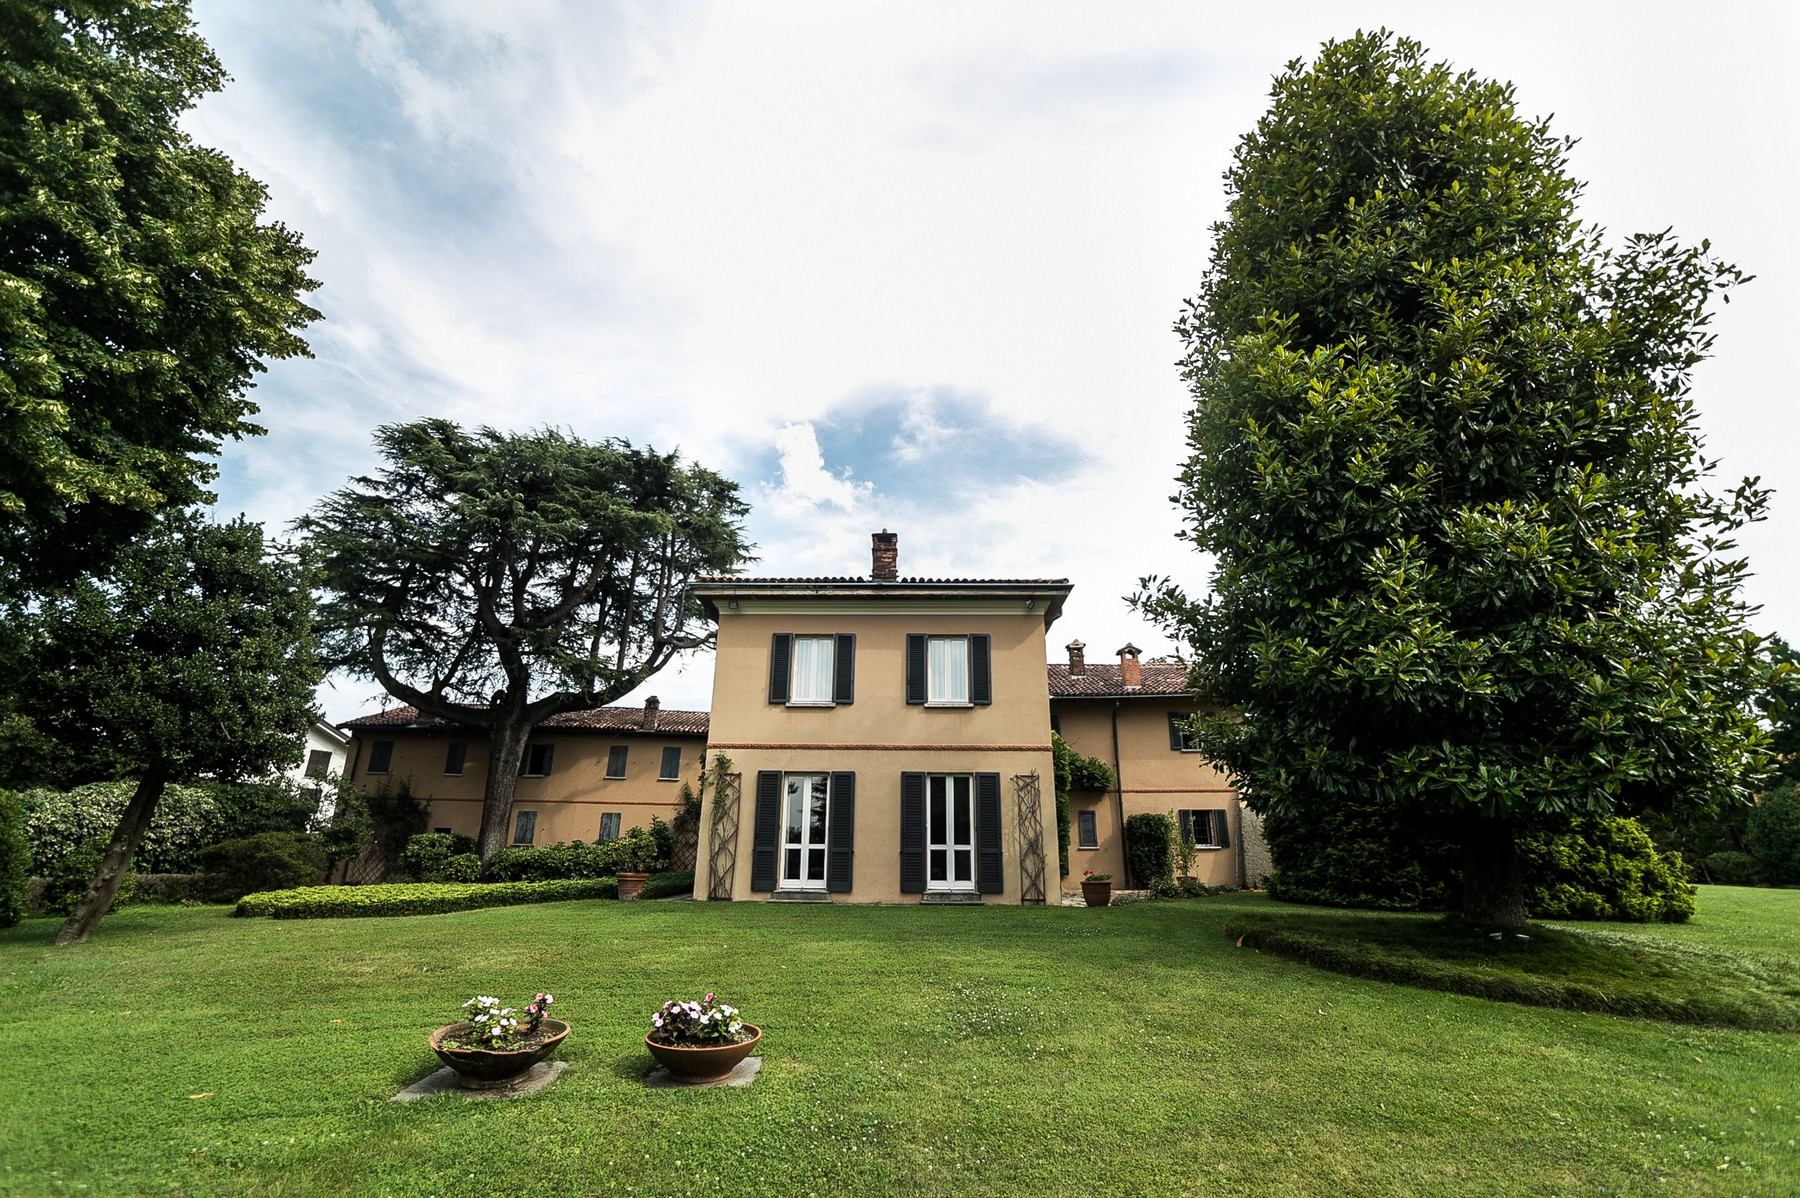 Additional photo for property listing at Elegant farmhouse located among the tranquil hills of Brianza countryside Via Muselle Carimate, Como 22060 Italia